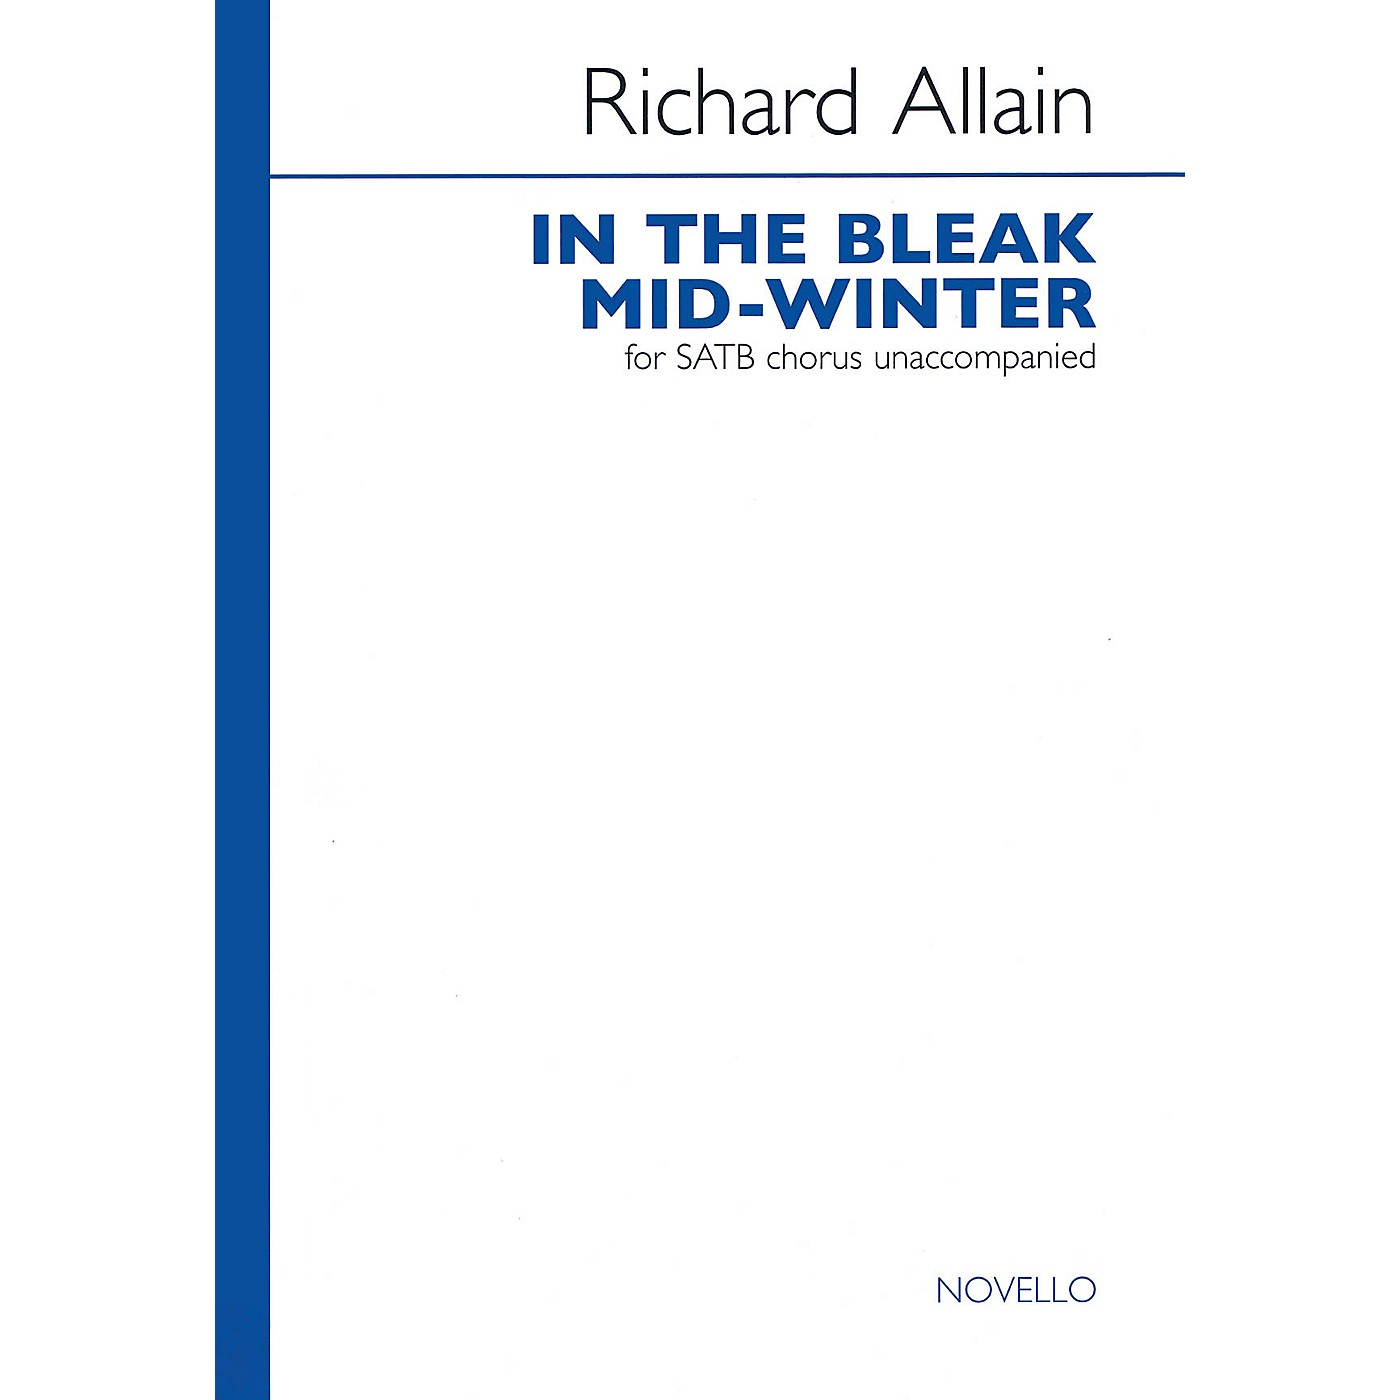 Novello In the Bleak Mid-winter (SATB a cappella) SATB a cappella Composed by Richard Allain thumbnail